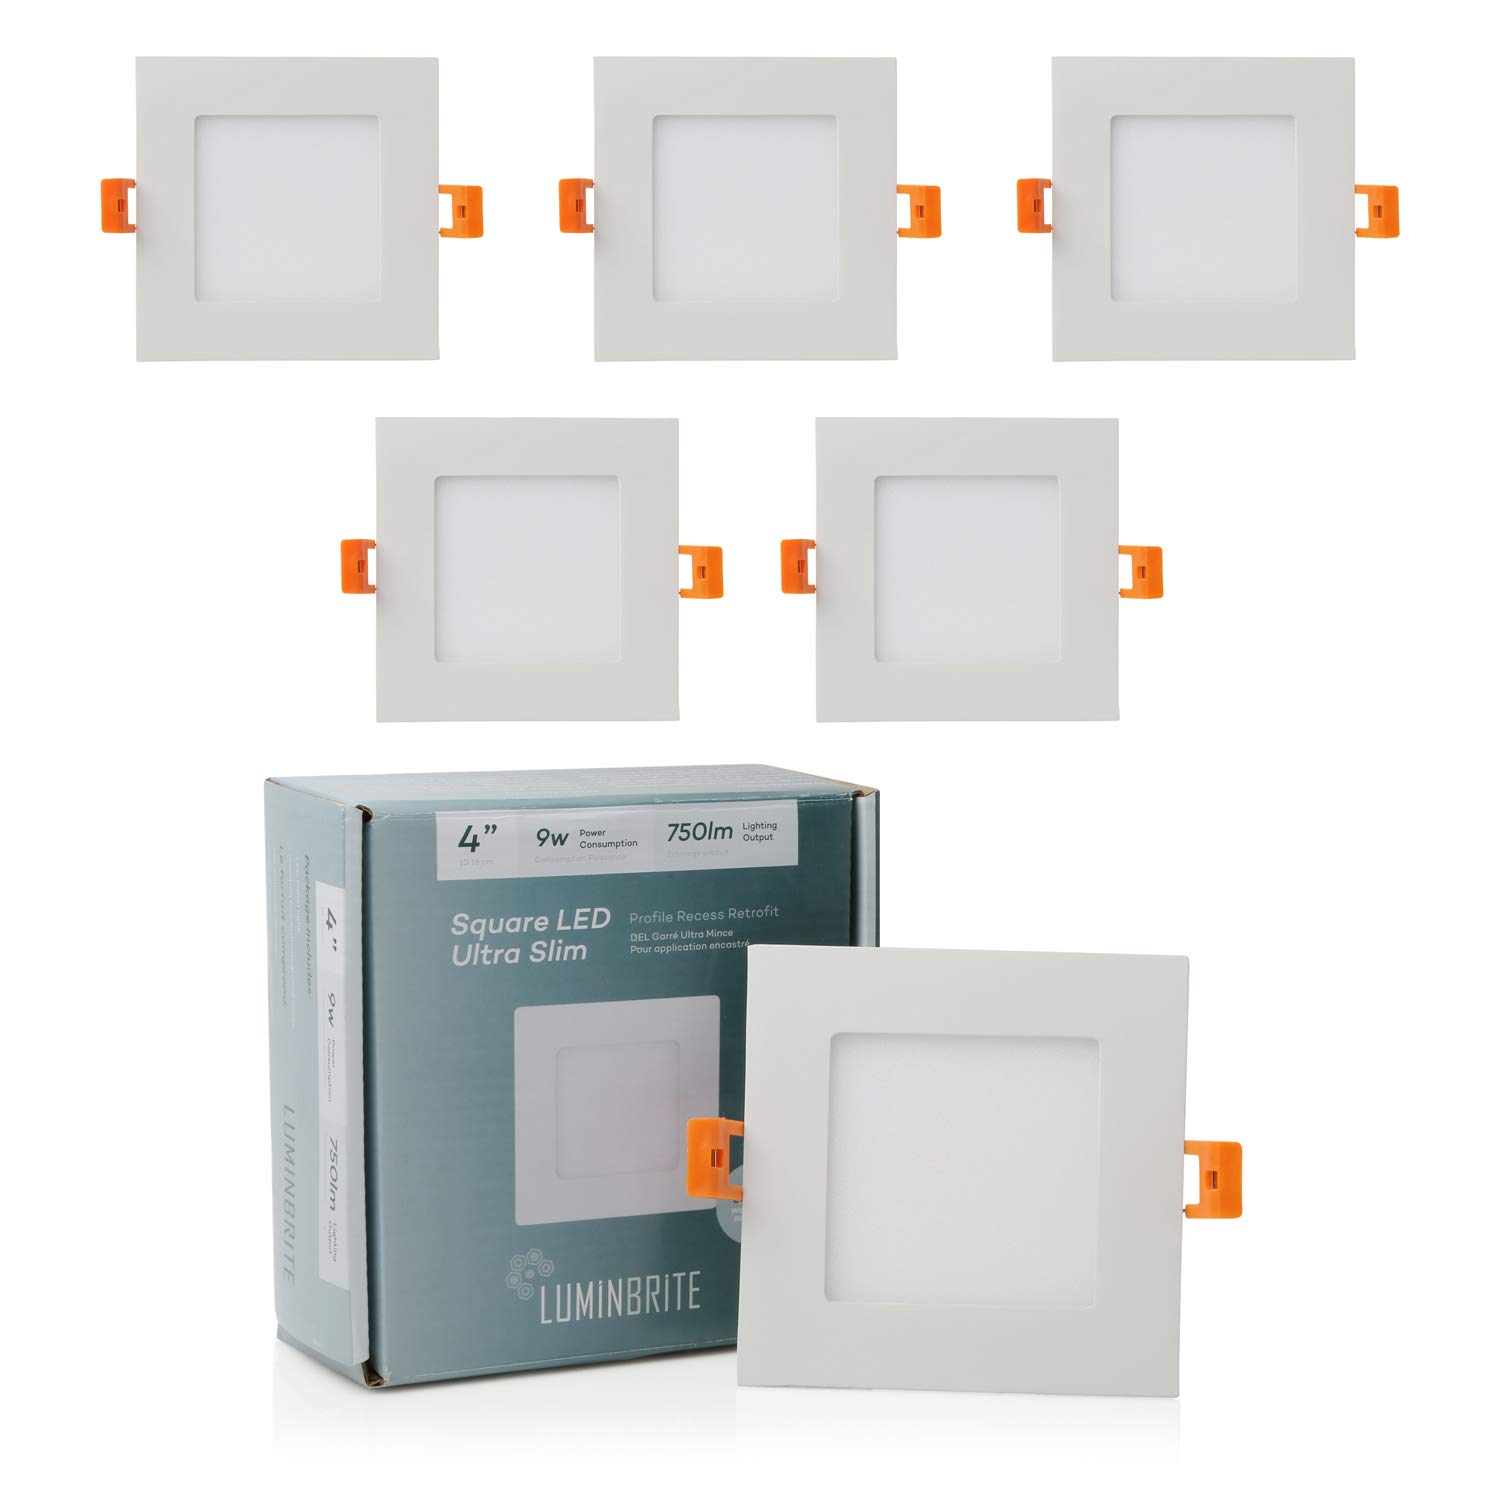 Lumin Brite Square Dimmable LED Recessed Ceiling Light Panel (4-Inch)| Residential 9W 750lm High Lumens | Slim Profile 4000K Disk Light for Home | ETL Listed/Energy Star Certification | White 6 Pack